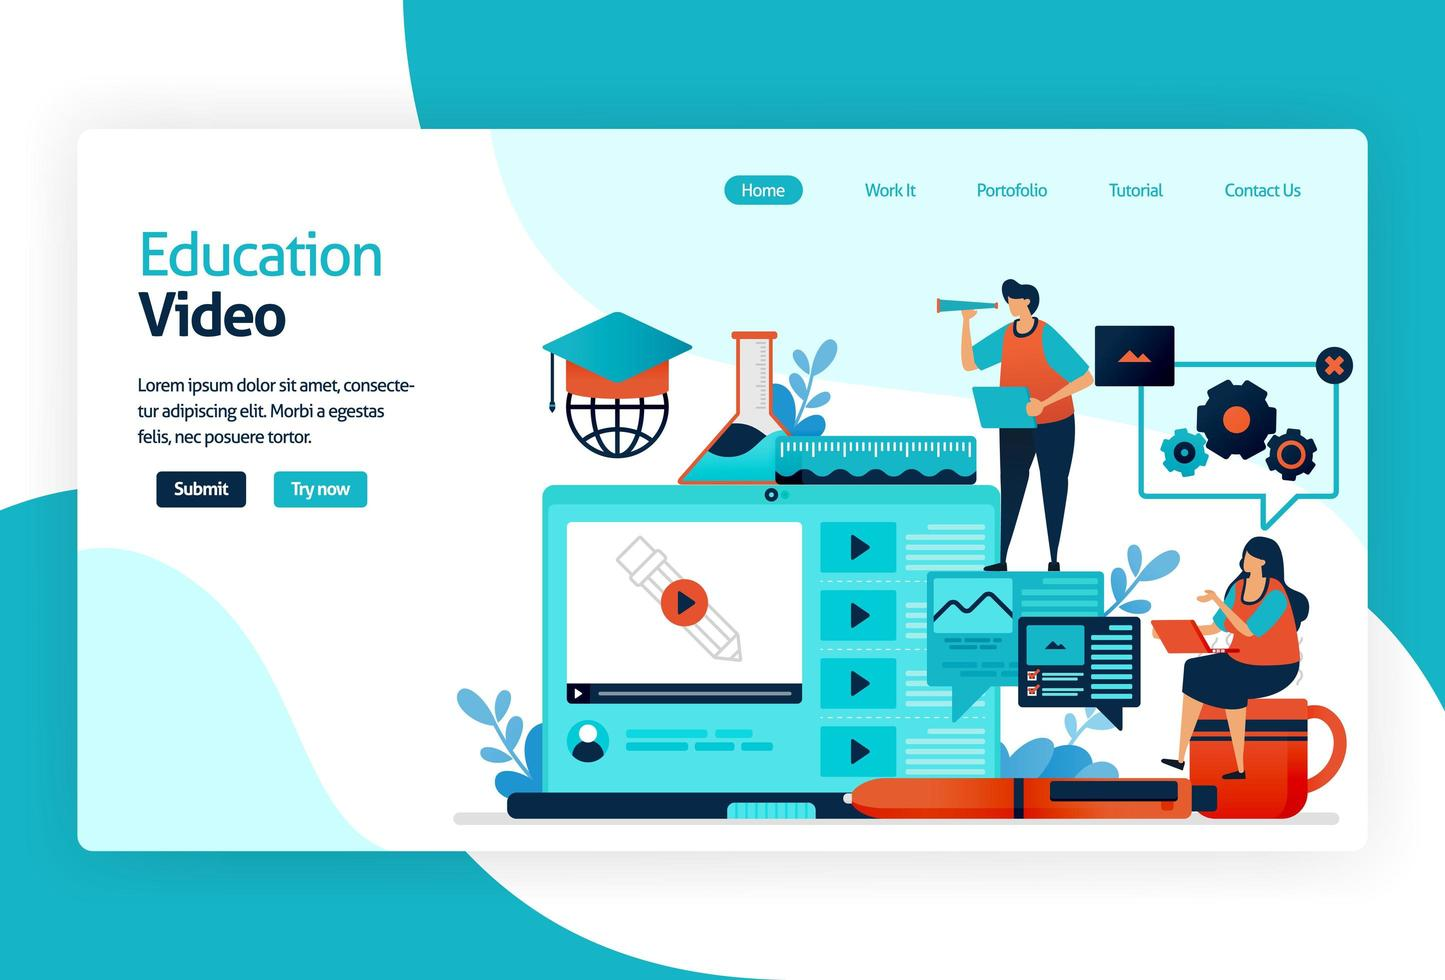 Illustration of landing page for Learning apps. Education process of learning knowledge, skills, values, beliefs, and habits. Digital technology in teaching, training, storytelling, discussion. vector